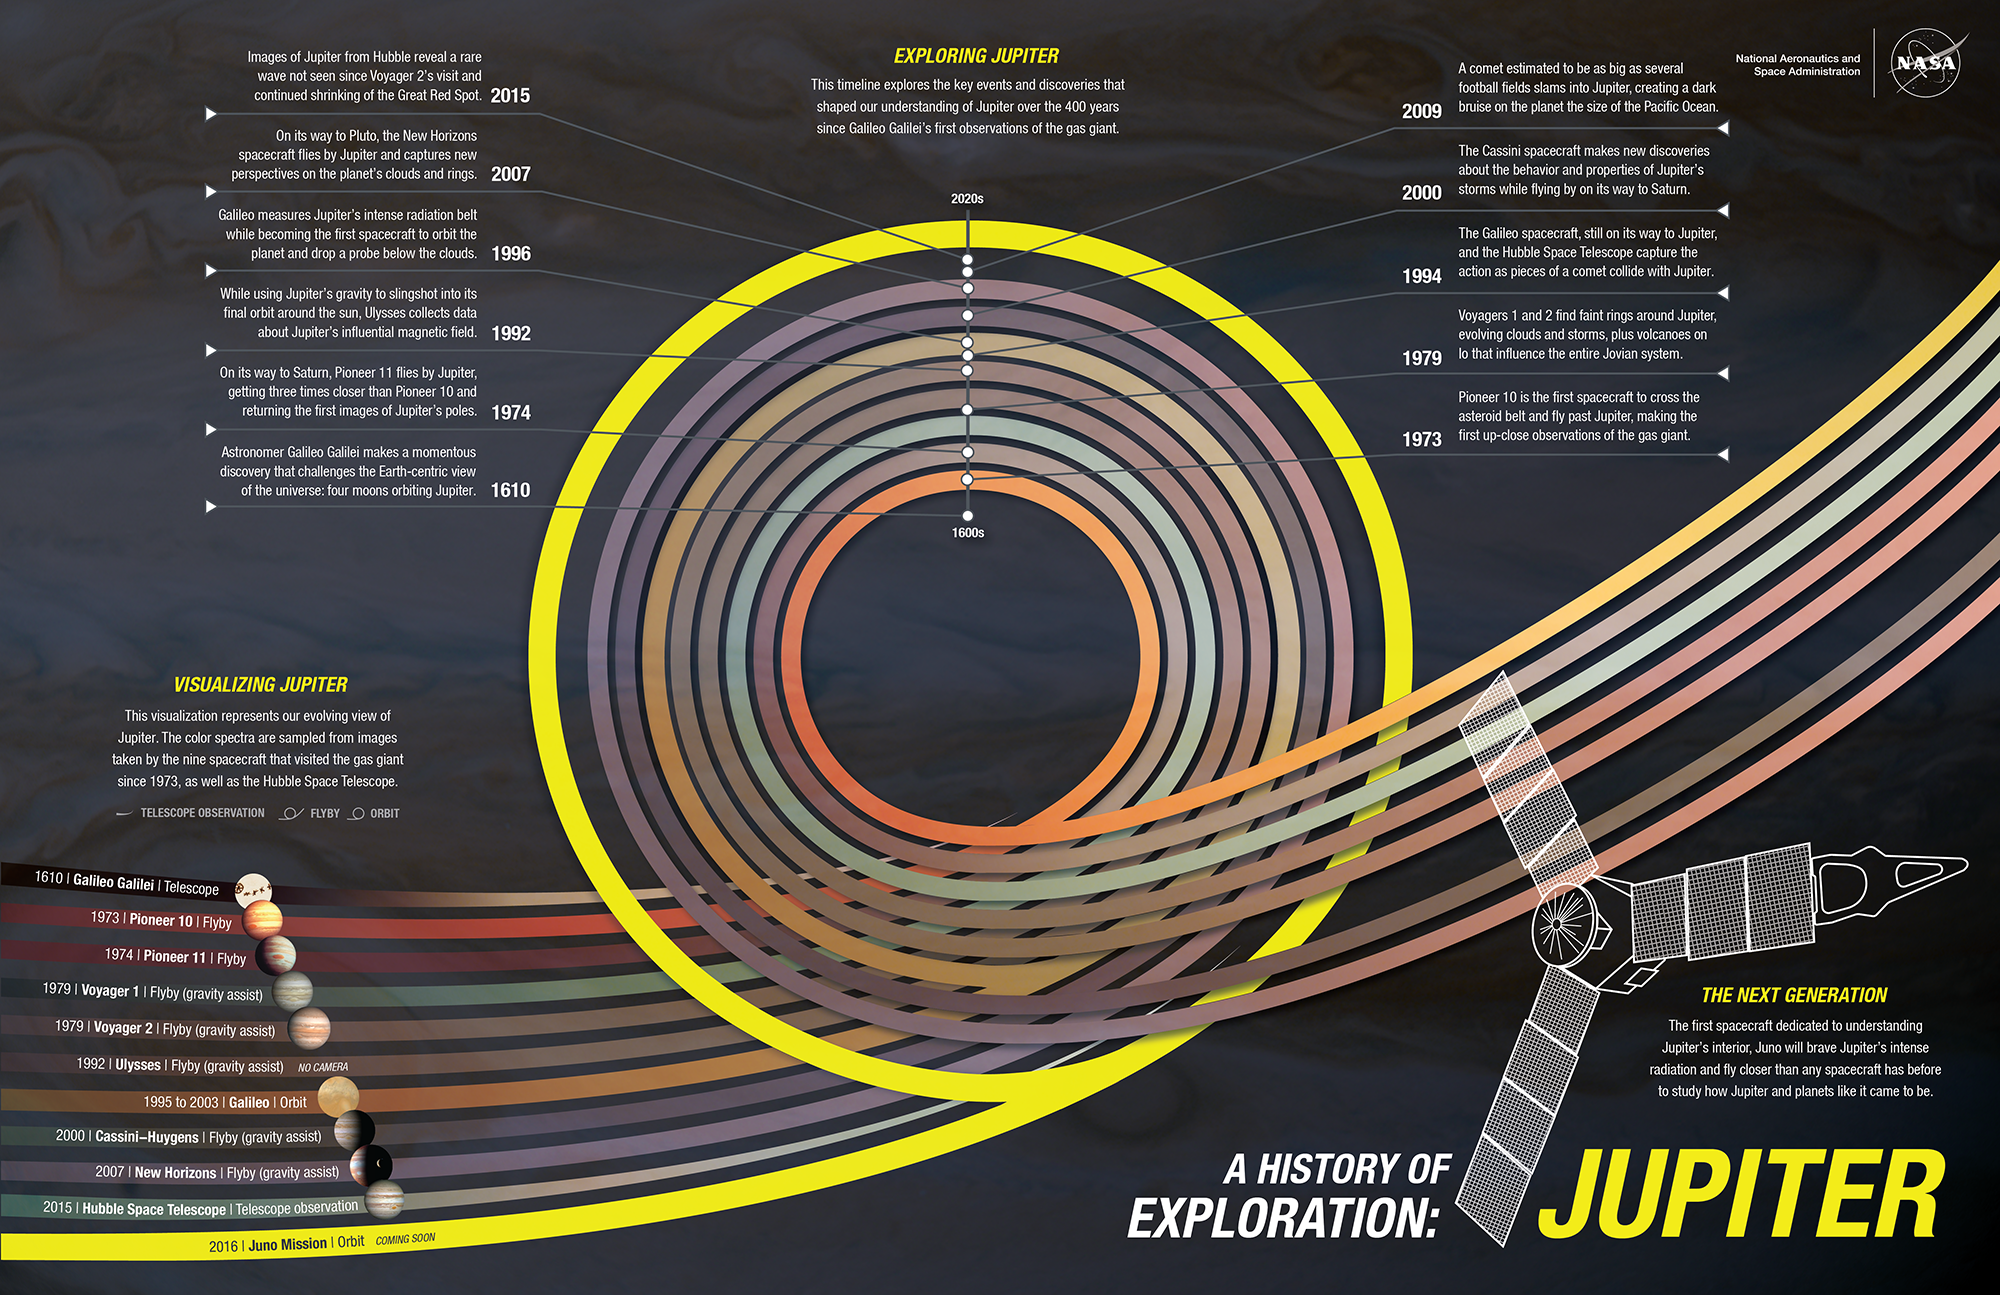 spacecraft missions to jupiter - photo #31